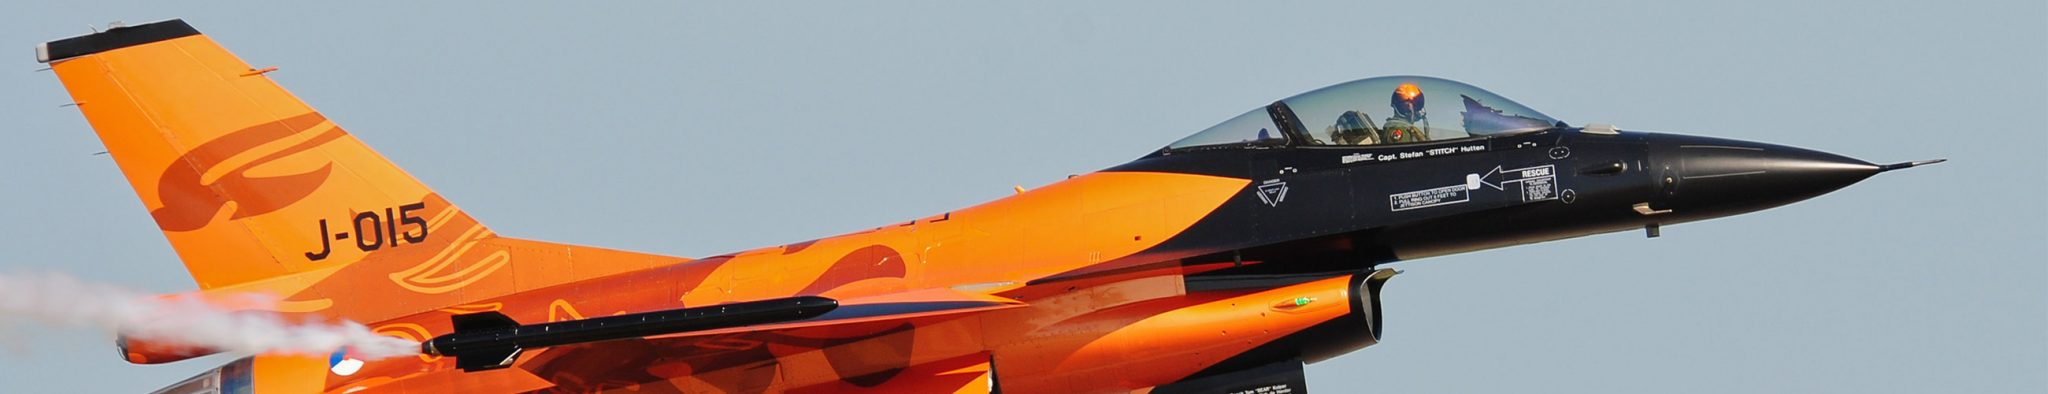 RoyalNetherlandsAirforce-slider